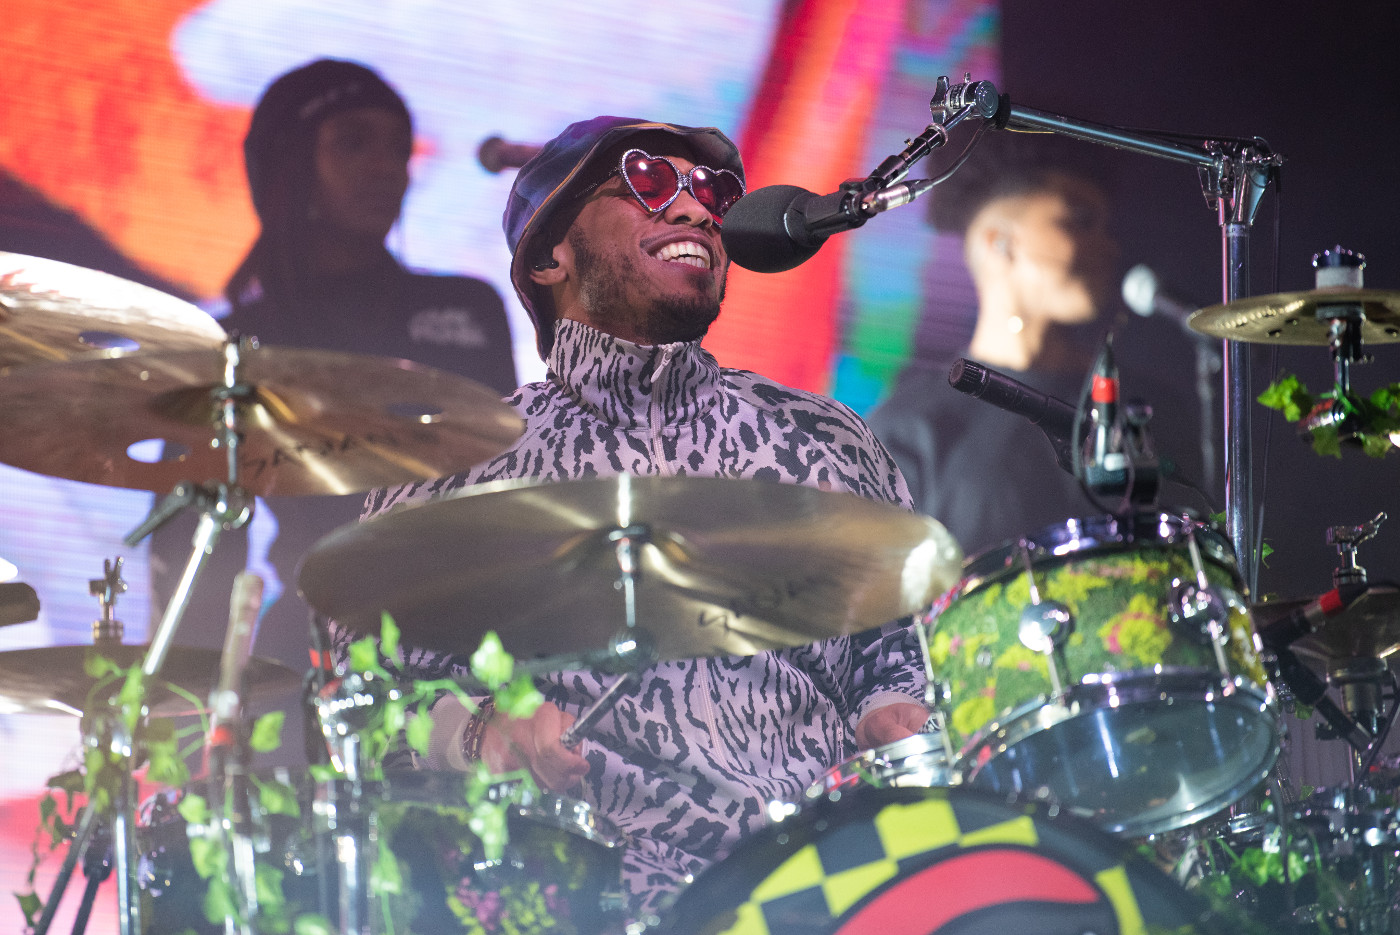 images/4xFar 2020/Anderson .Paak and the Free Nationals